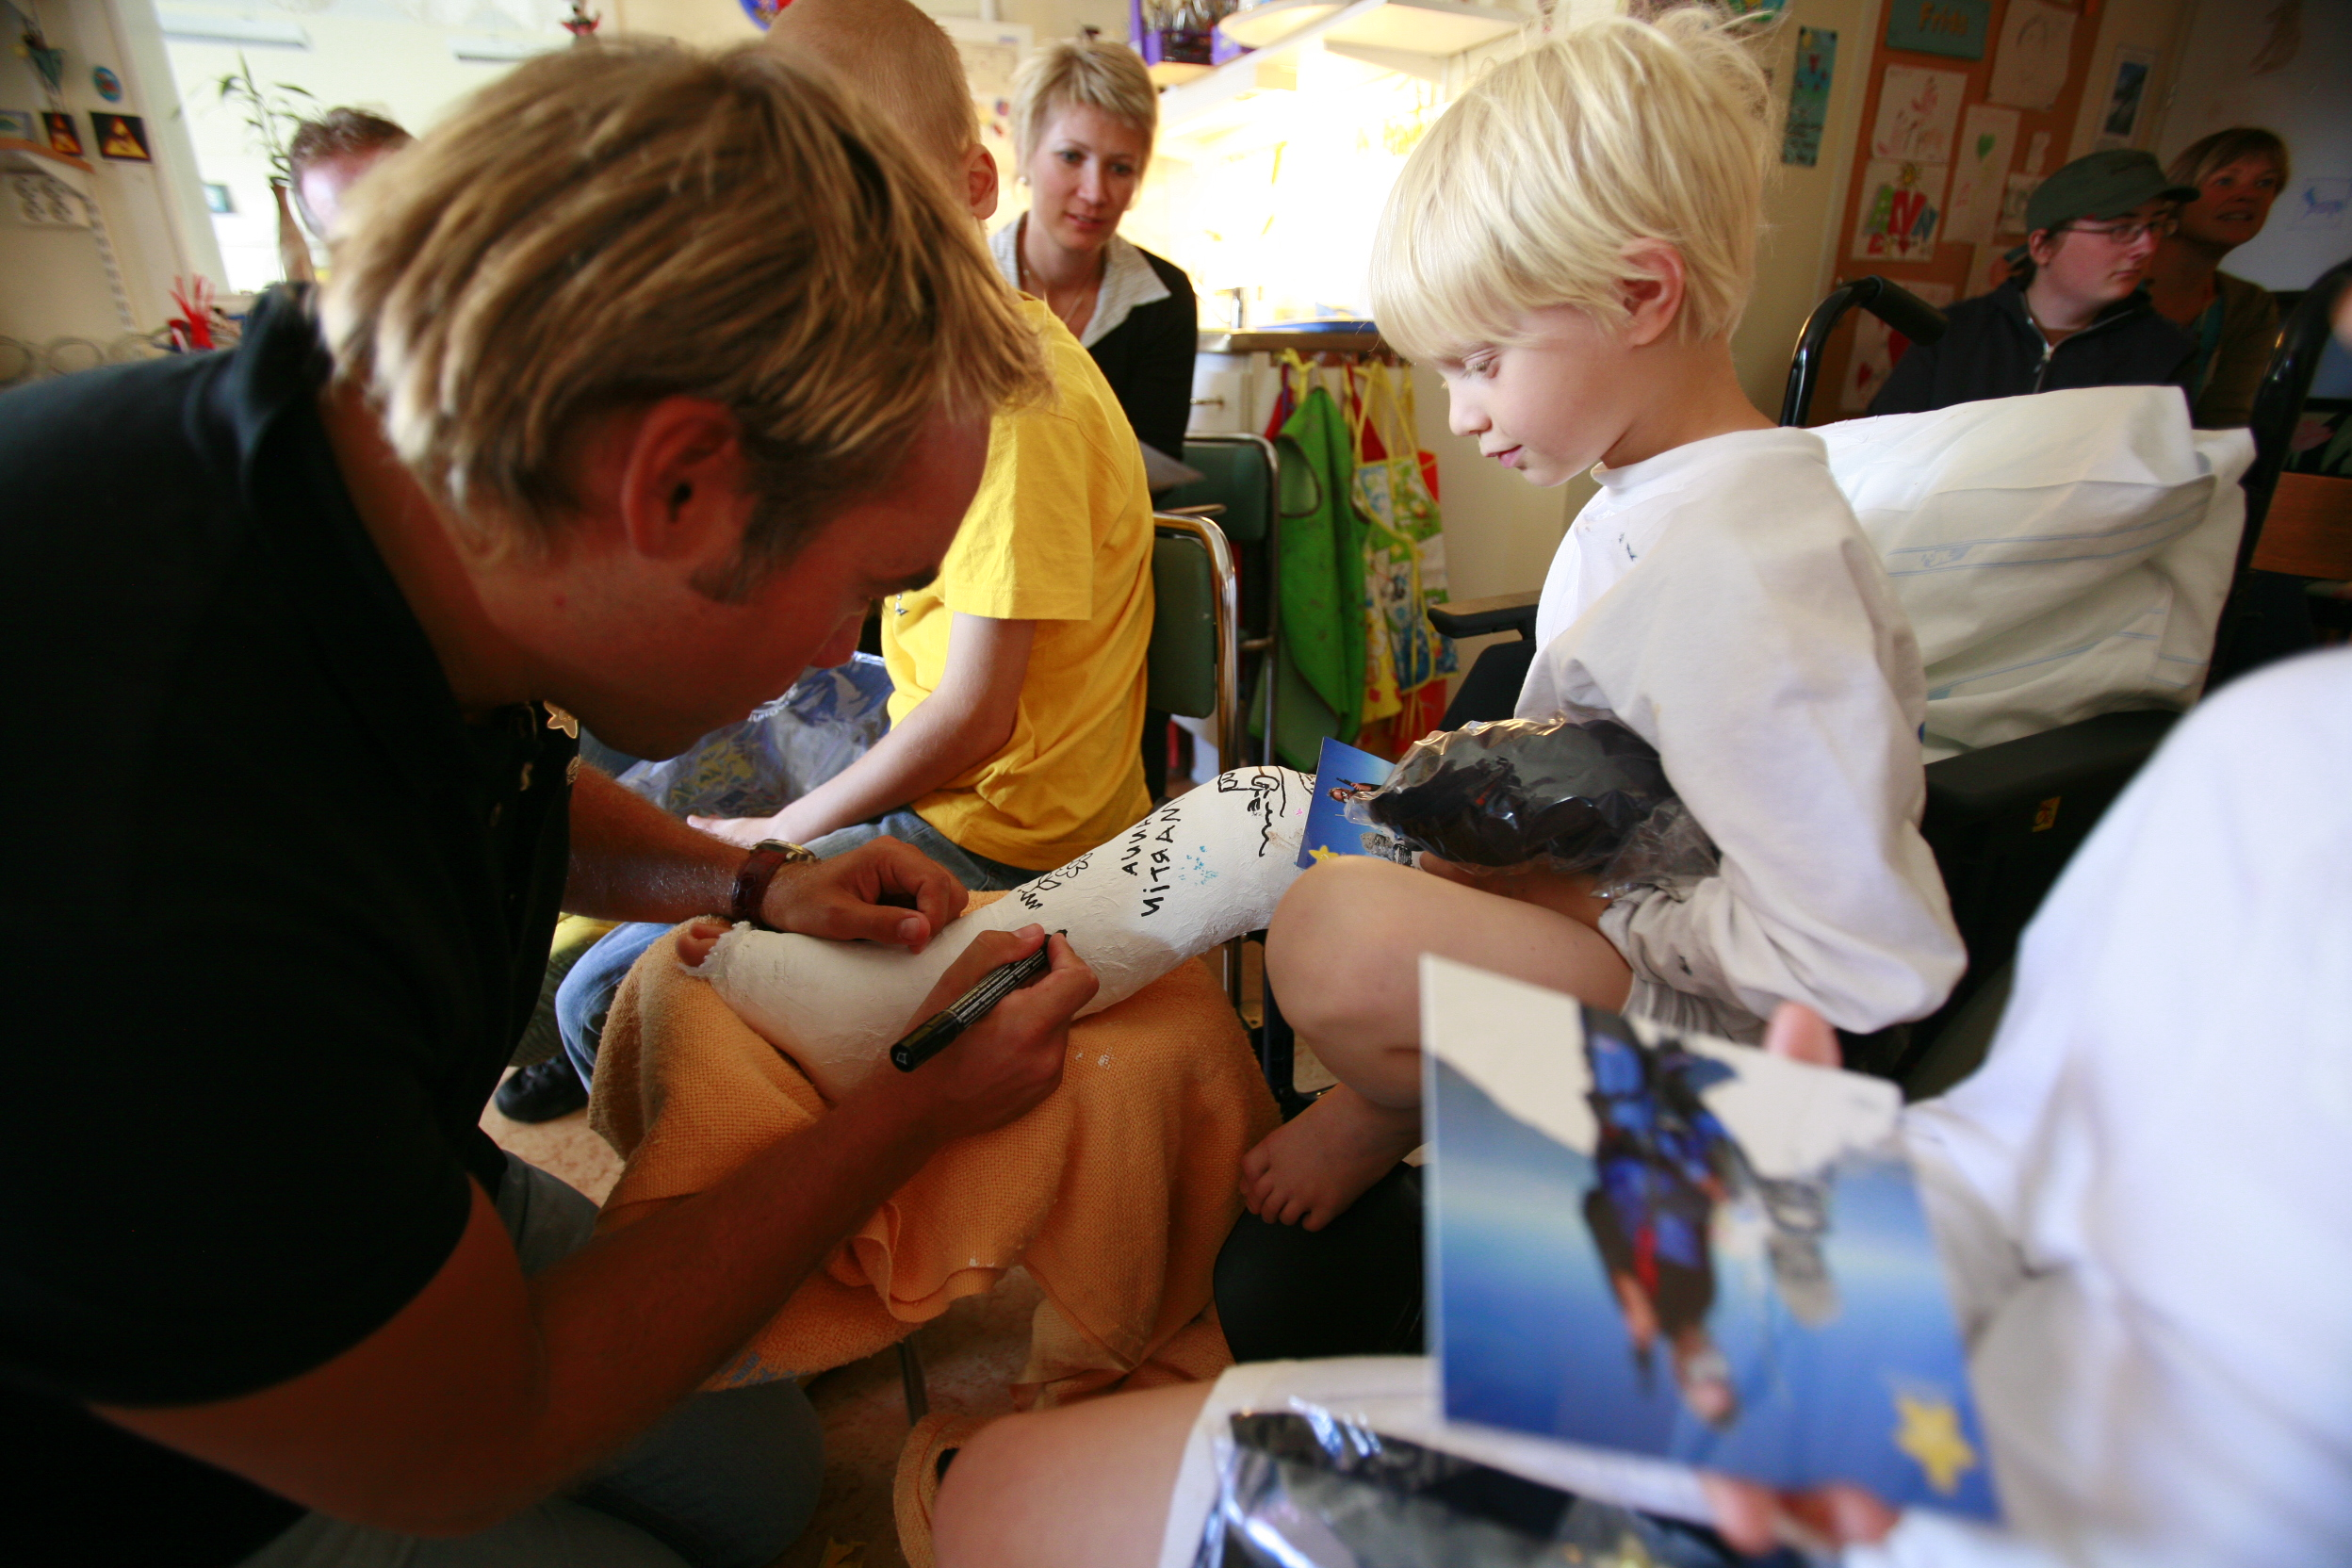 Johan is signing the leg of a little hero at the hospital